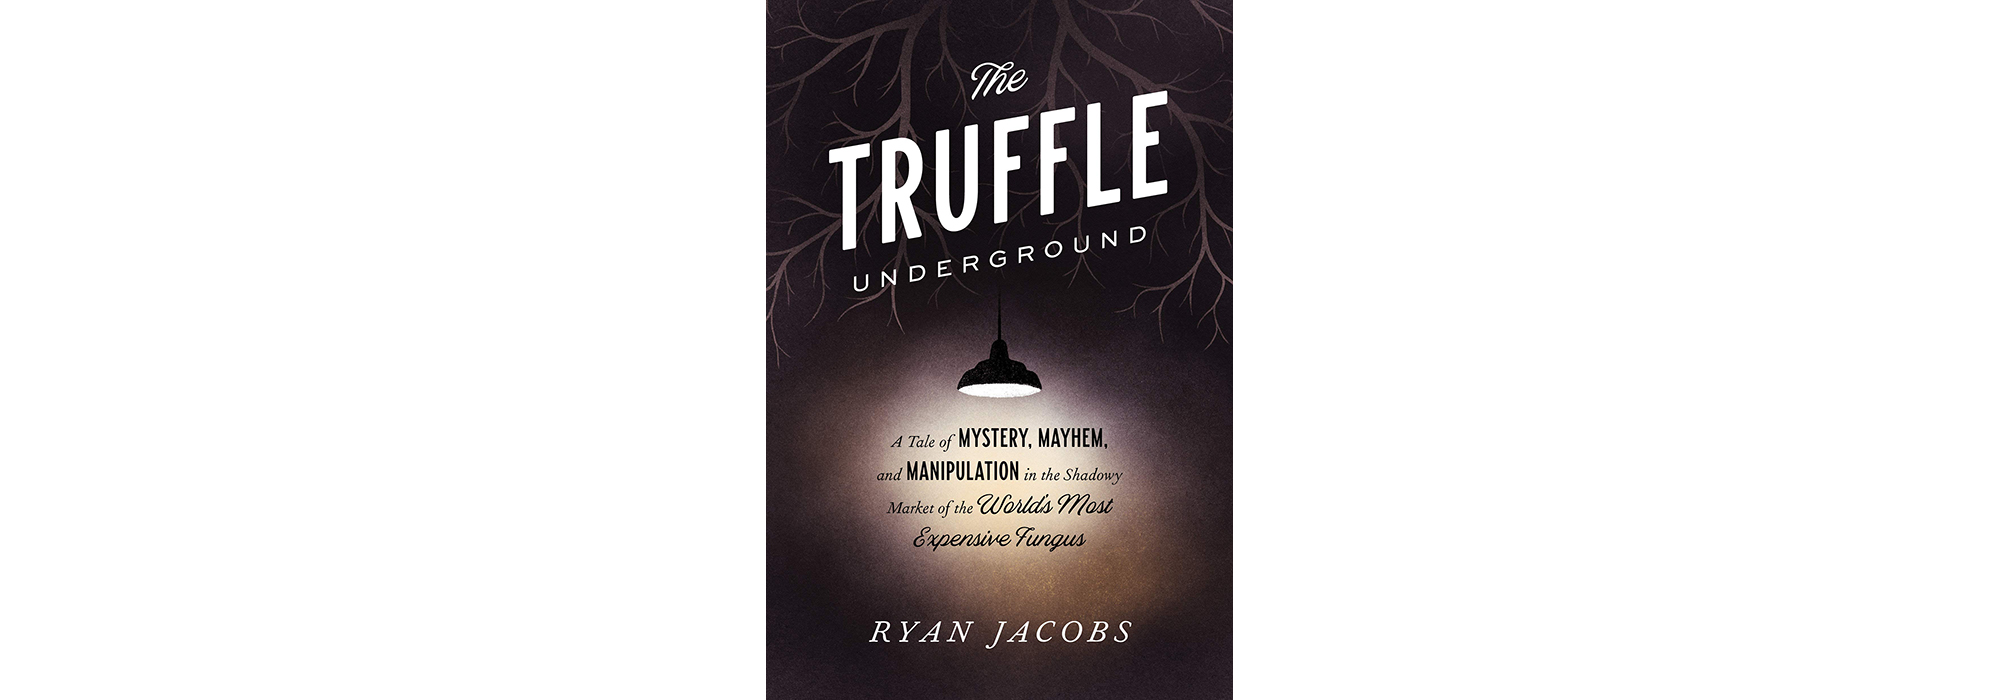 Cover of The Truffle Underground, by Ryan Jacobs